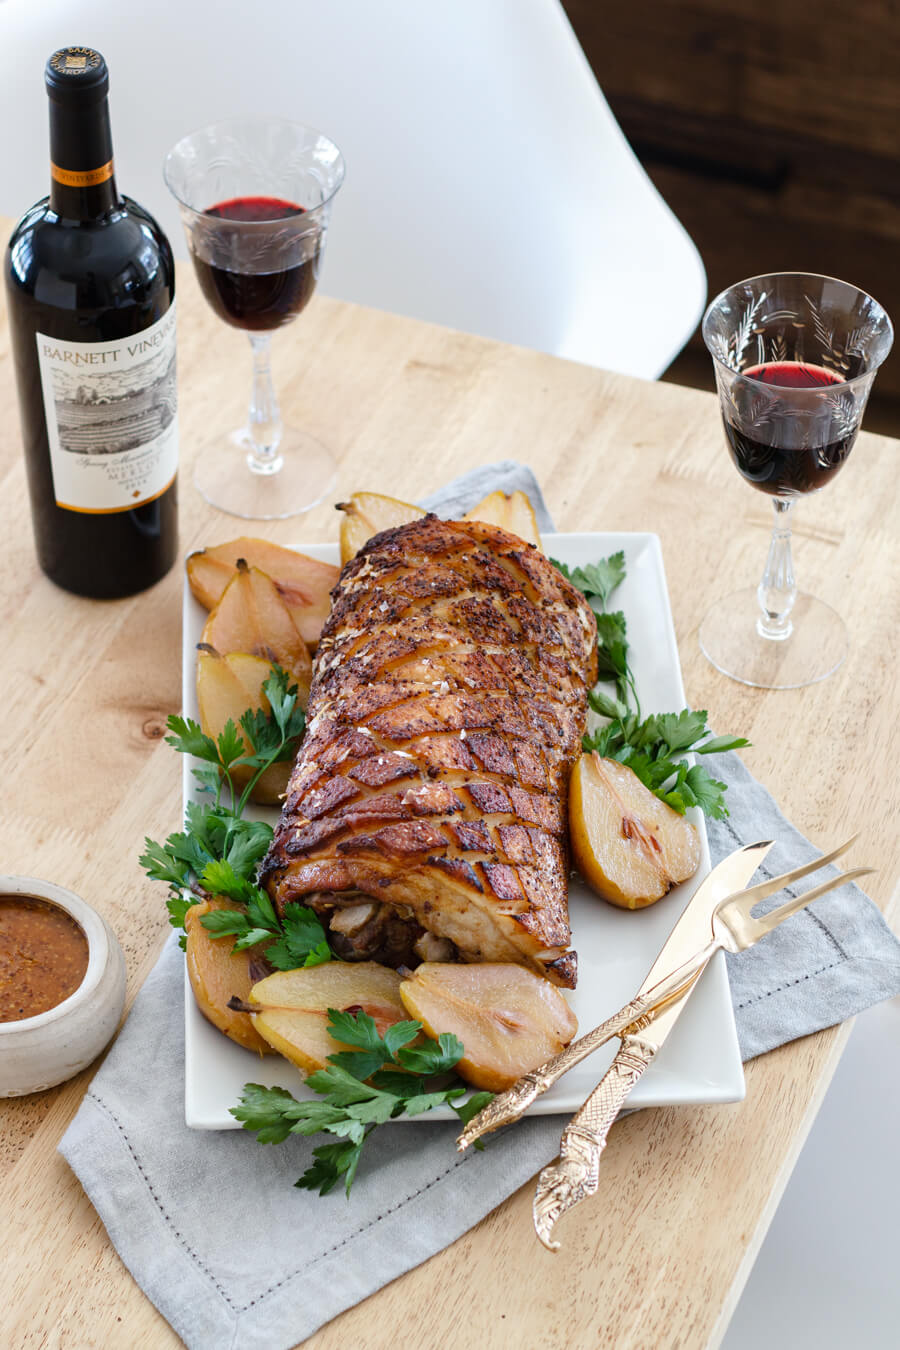 Make this tender, slow roasted pork belly marinated in bourbon mustard and stuffed with tangy pears. A stunning dish for your next dinner party. Recipe at www.designsofanykind.com.